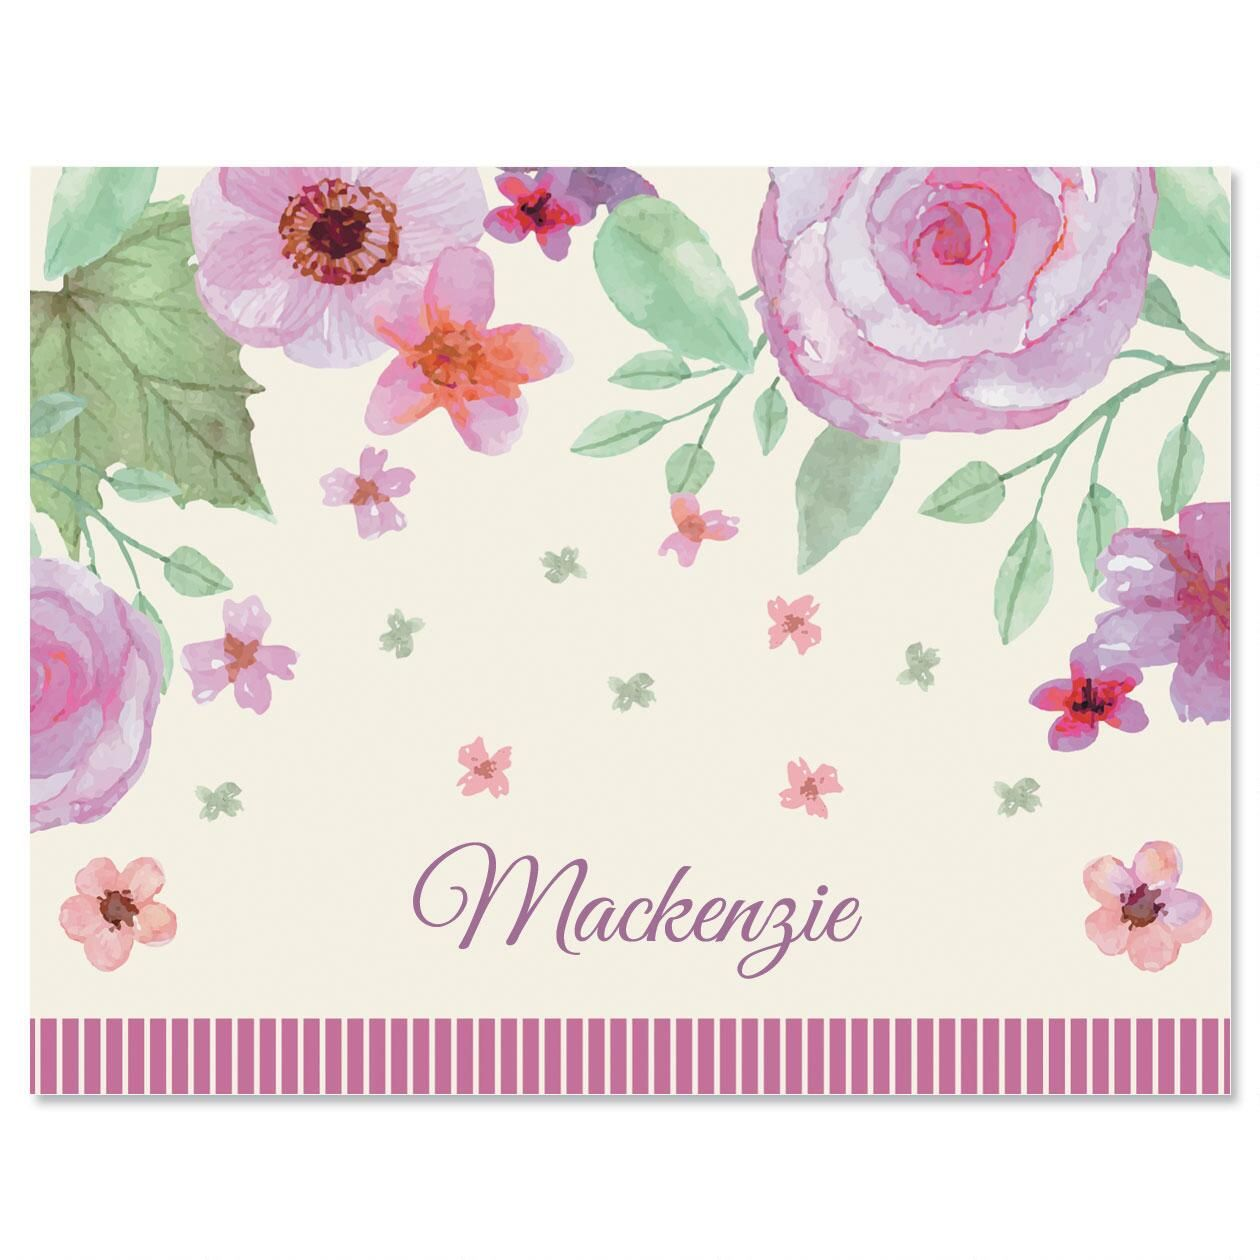 Bliss Personalized Note Cards